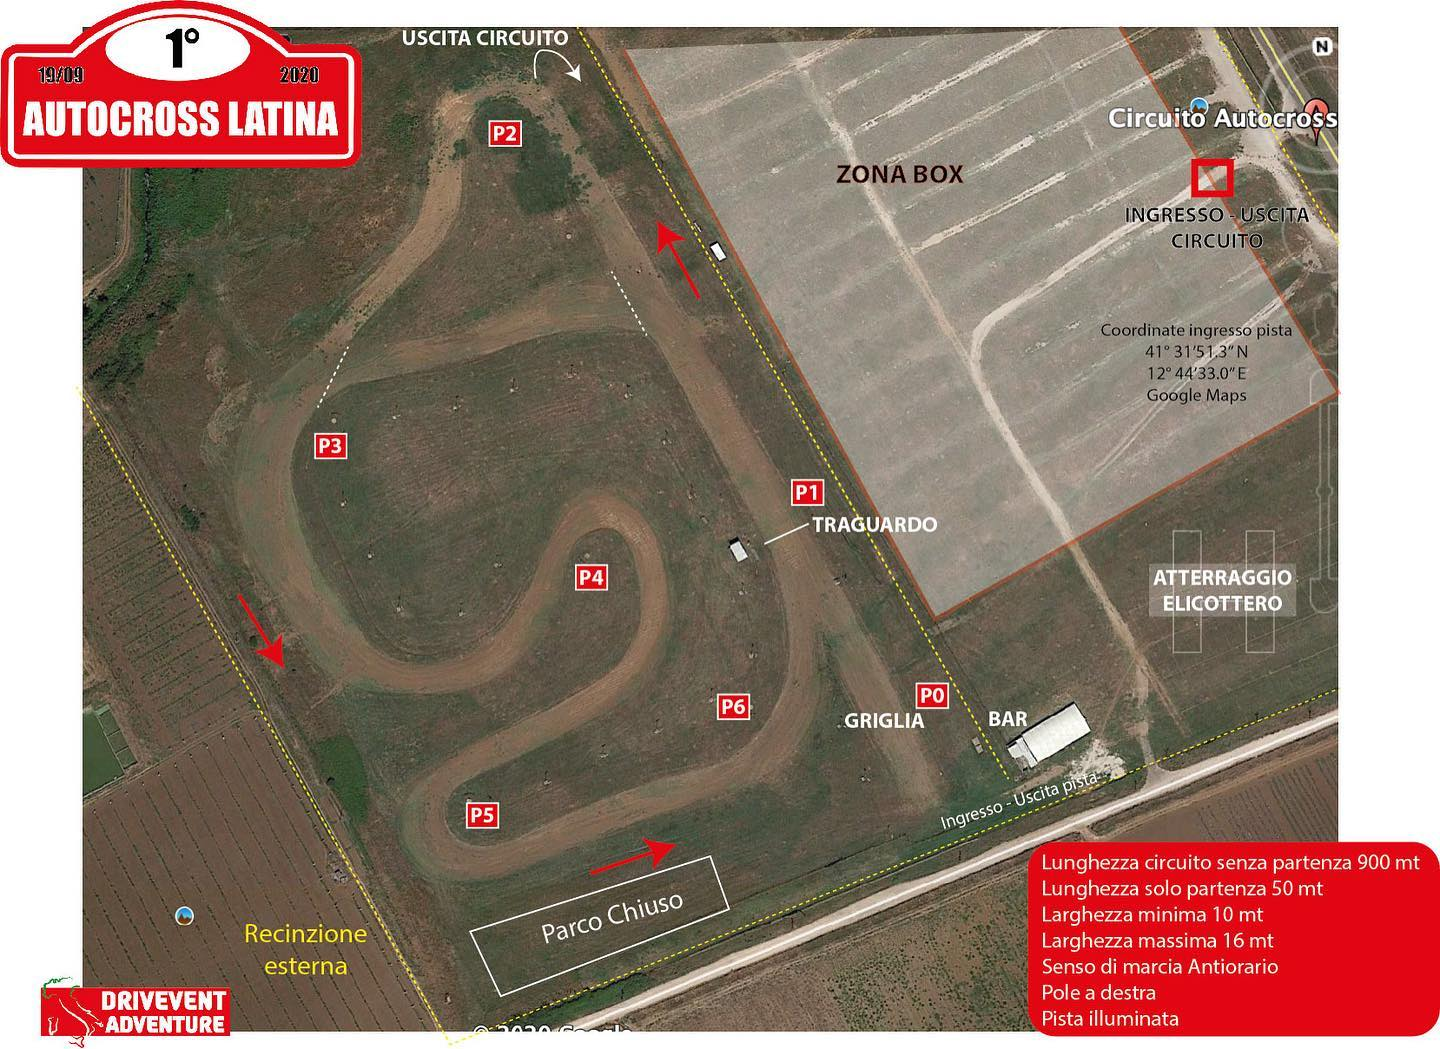 Circuito AutoCross Latina drivEvent Adventure